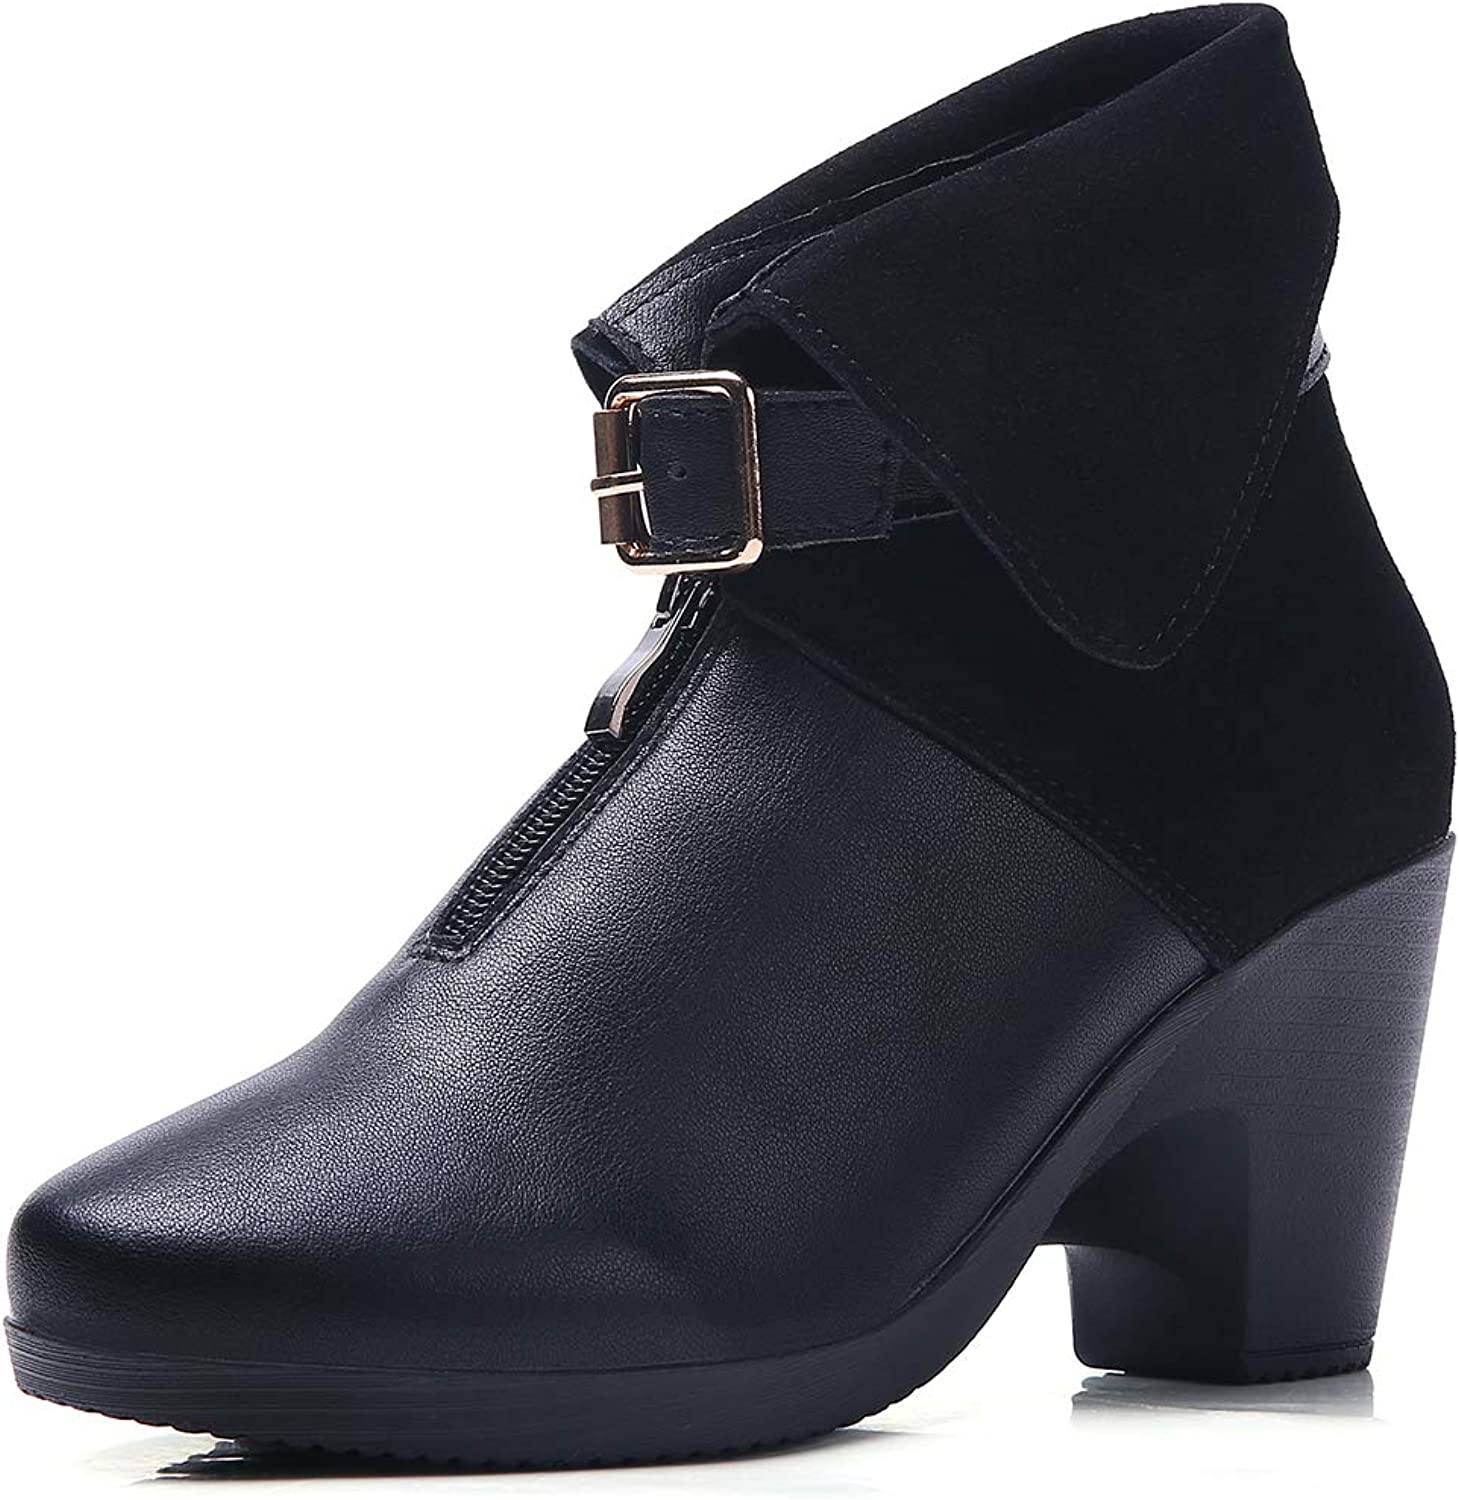 GENICA Women Designer Ankle Boots Leather Strap Buckle shoes